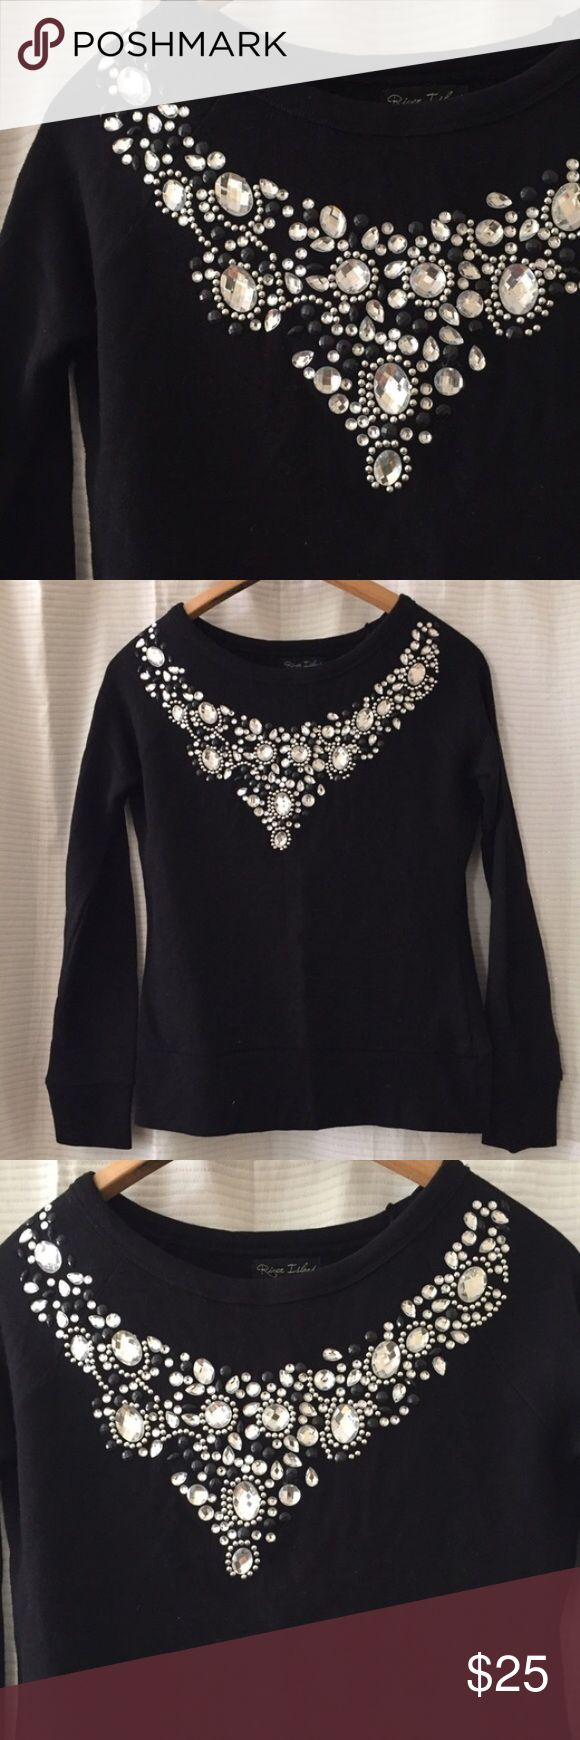 River Island Jeweled Sweatshirt/Top River Island brand jeweled sweatshirt/top (has what feels like sweatshirt material on the inside). Super comfortable, but looks dressy because of the bejeweled collar. Only worn a handful of times. Size XS. River Island Tops